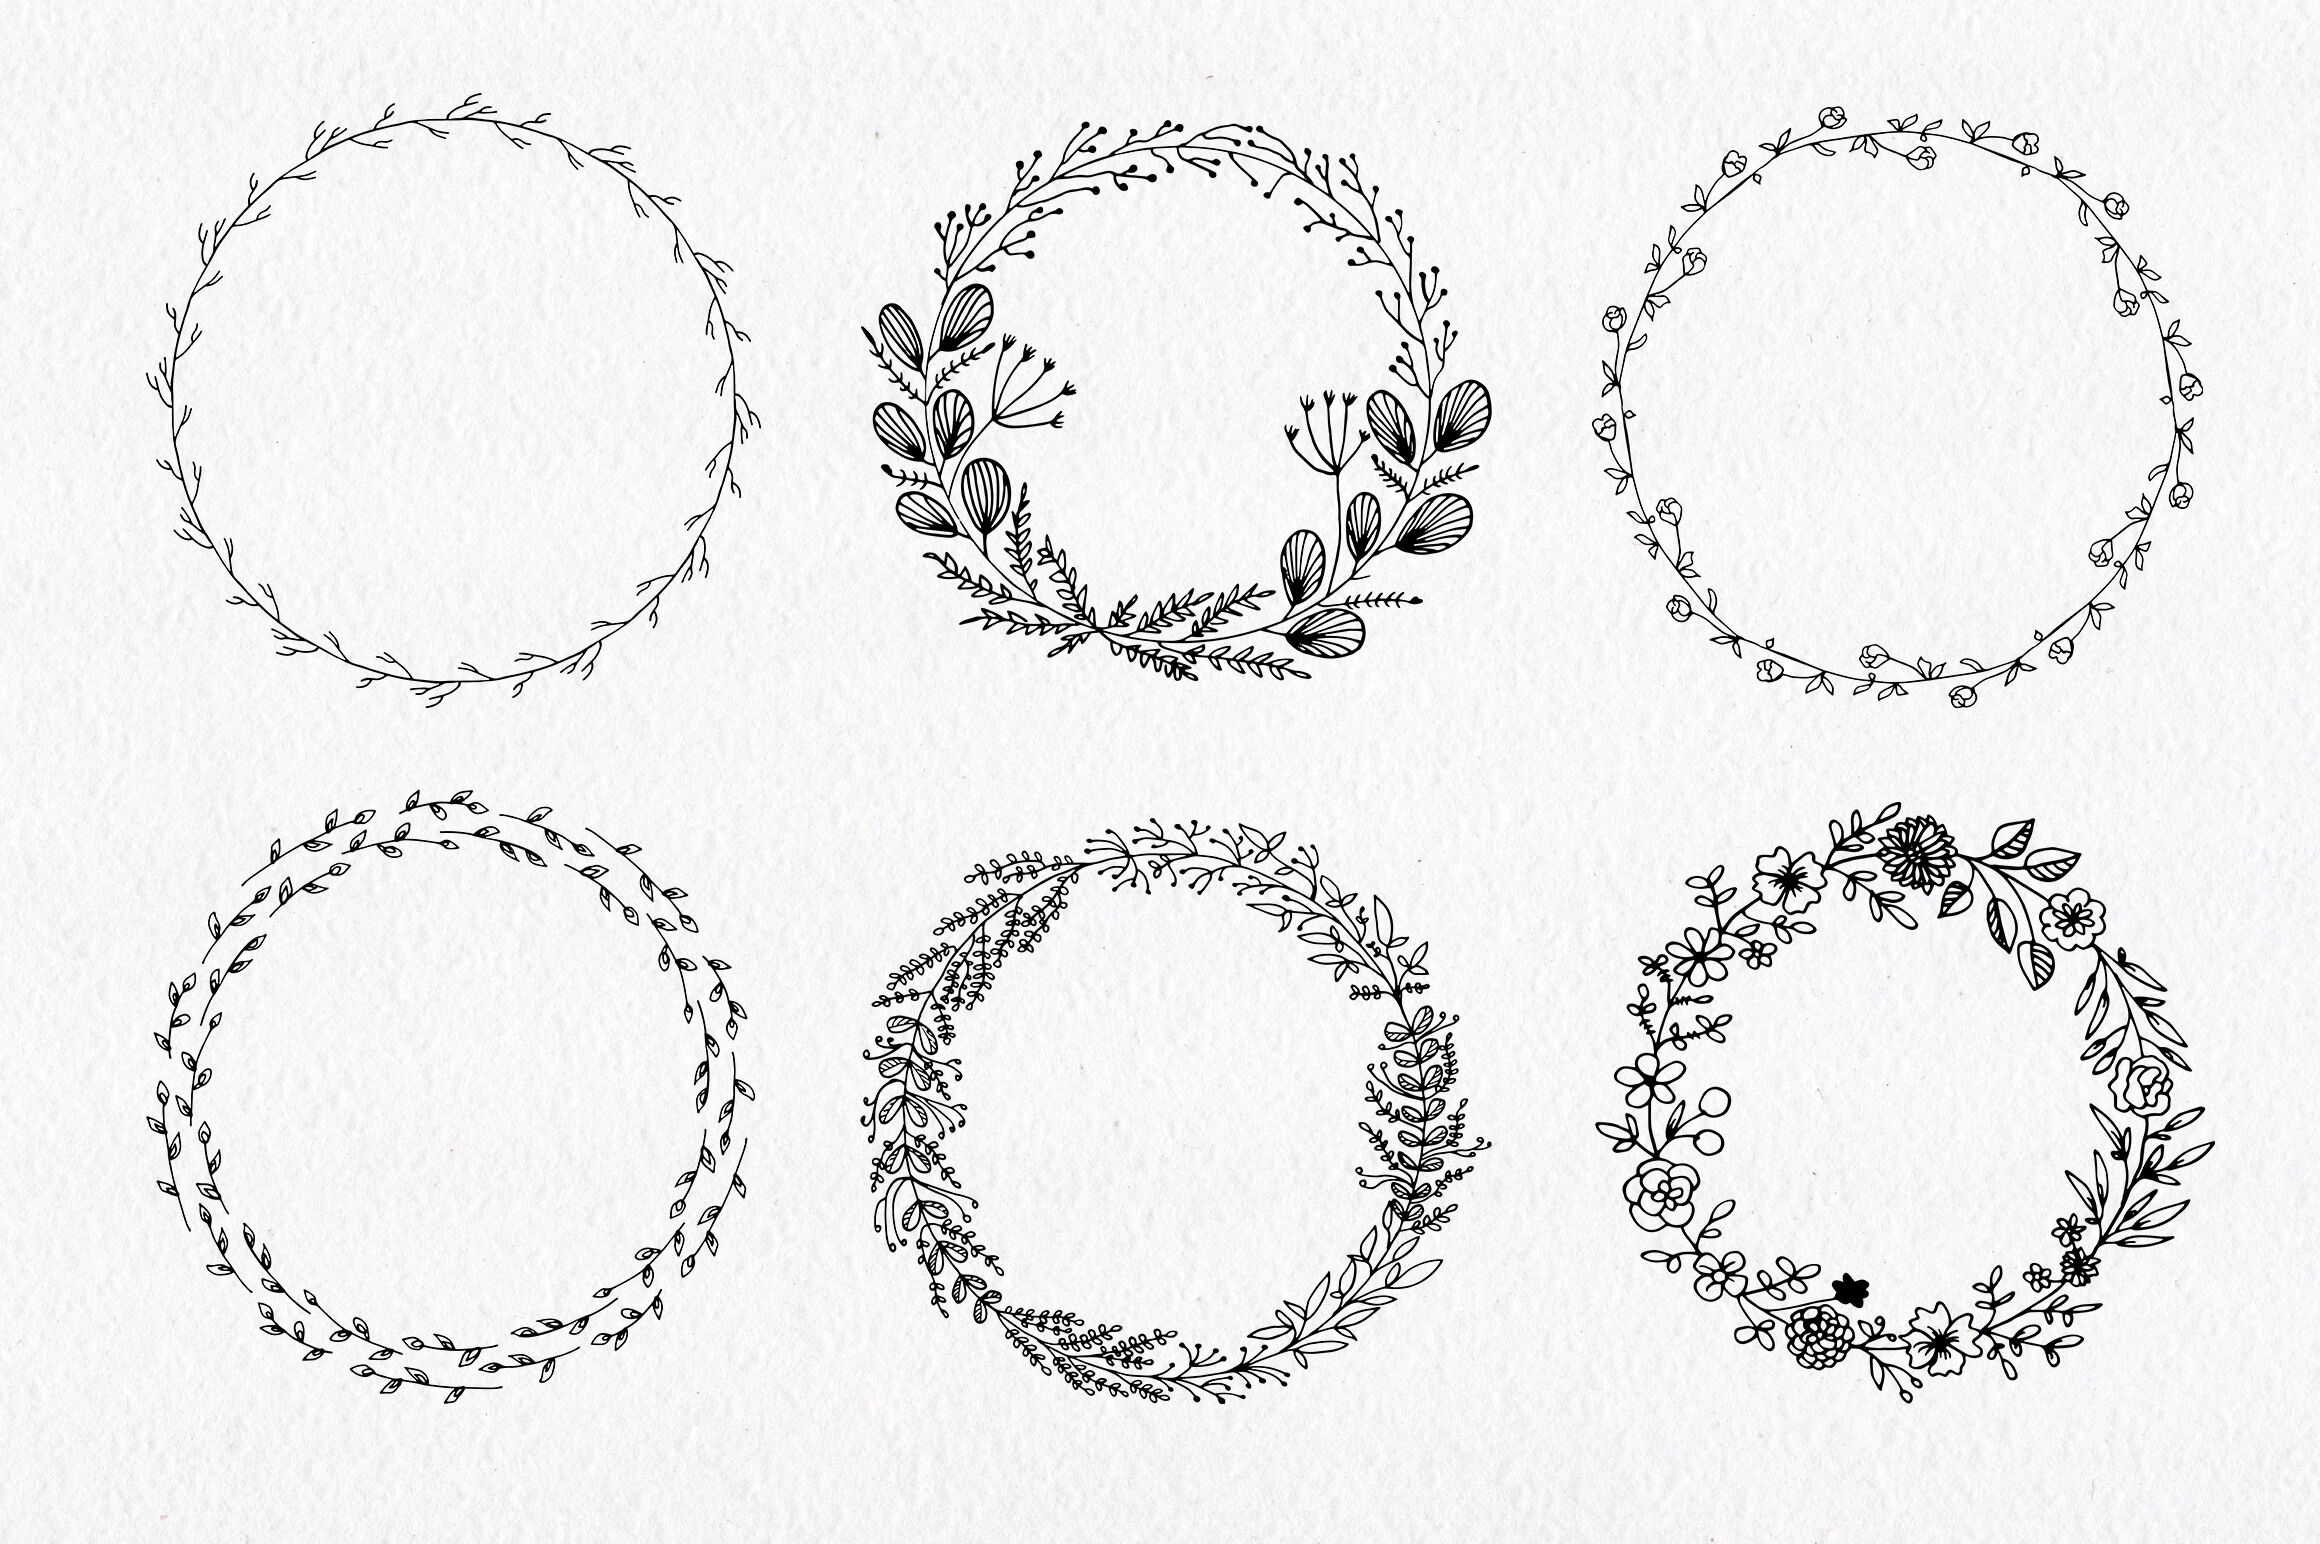 30 Hand Drawn Floral Wreath Simple Line Drawing By Istratova